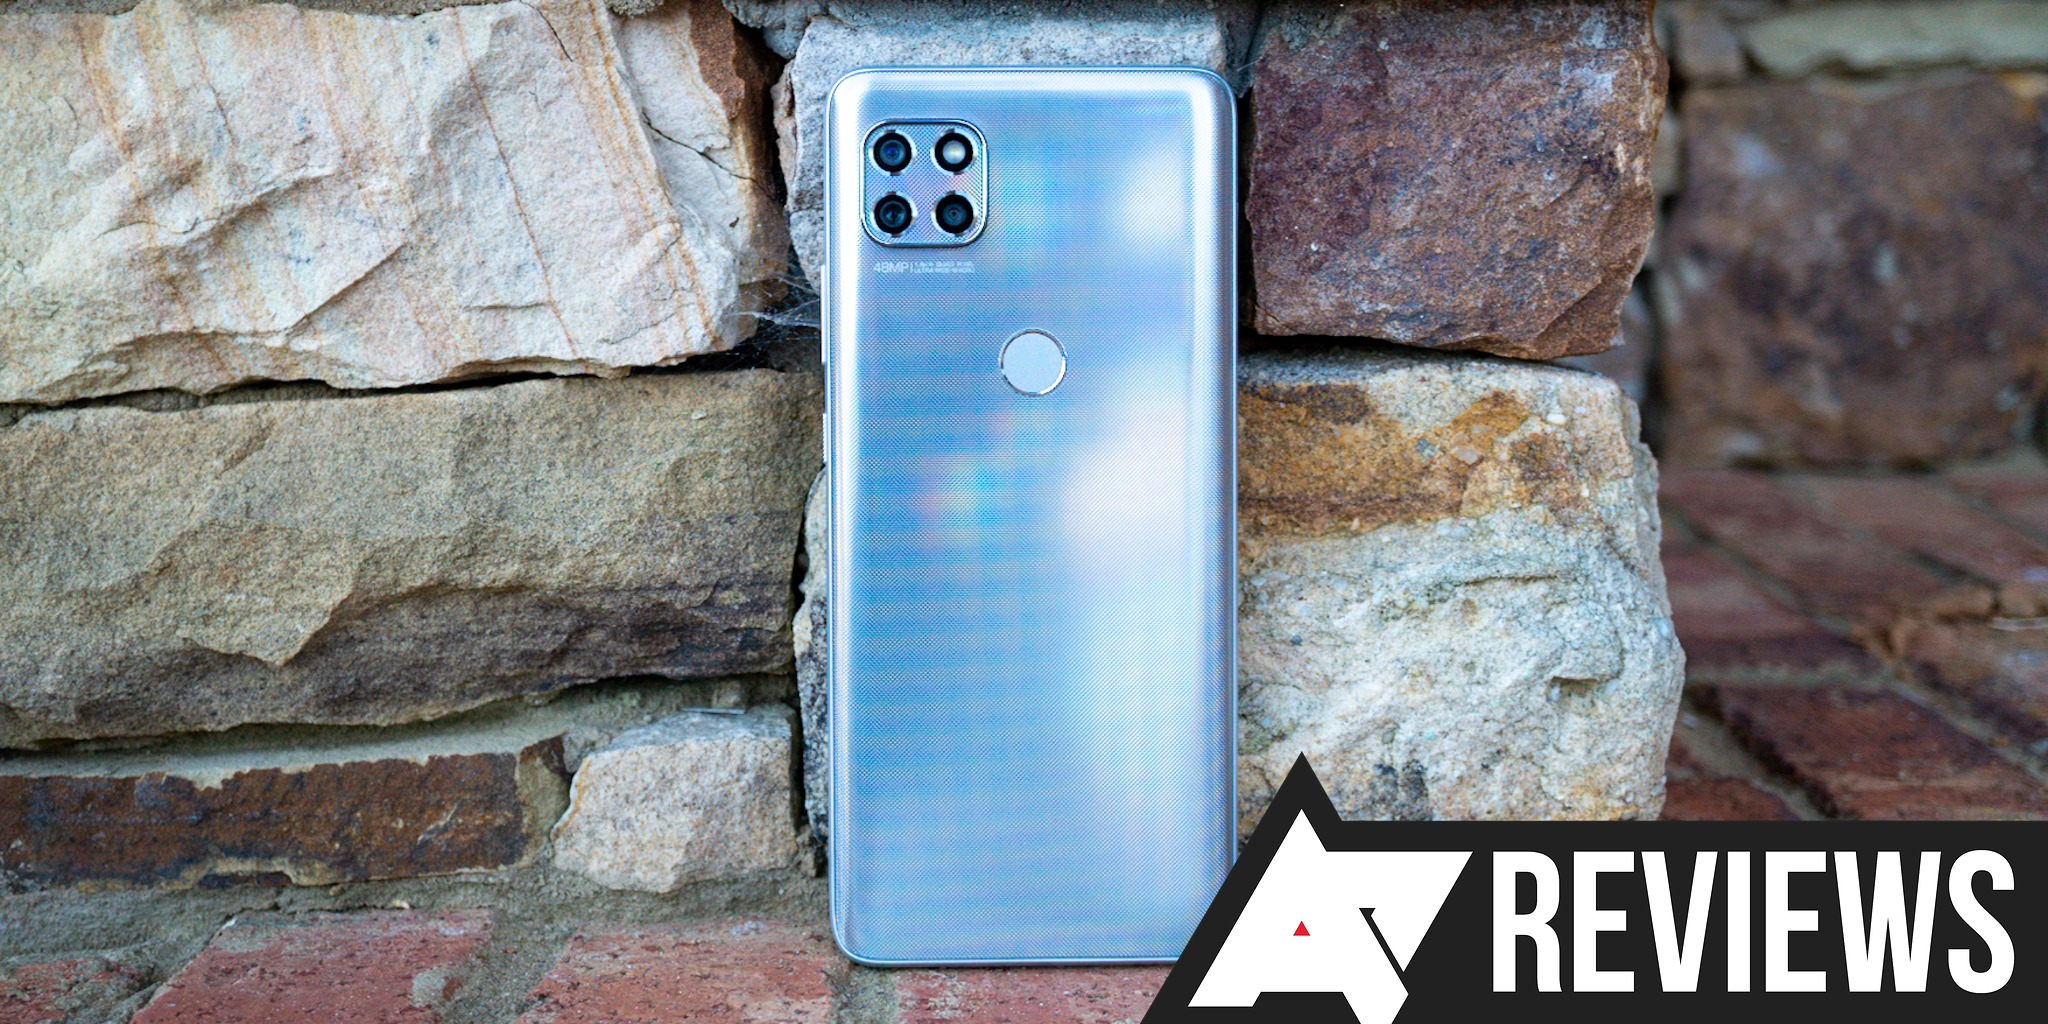 Motorola One 5G Ace review: Not good enough for $400 thumbnail